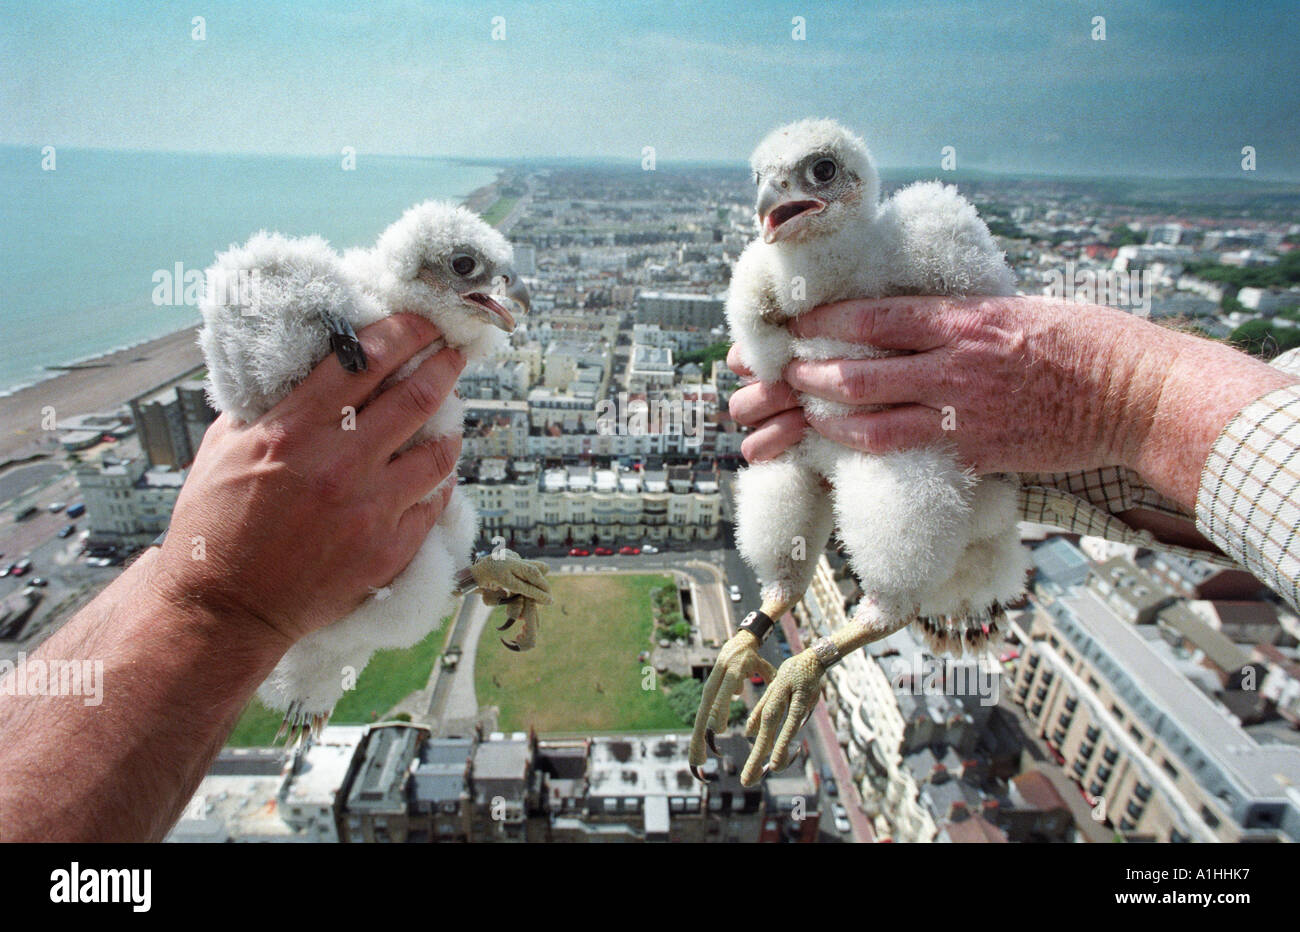 Peregrine falcon chicks Falco peregrinus being held above a townscape. - Stock Image